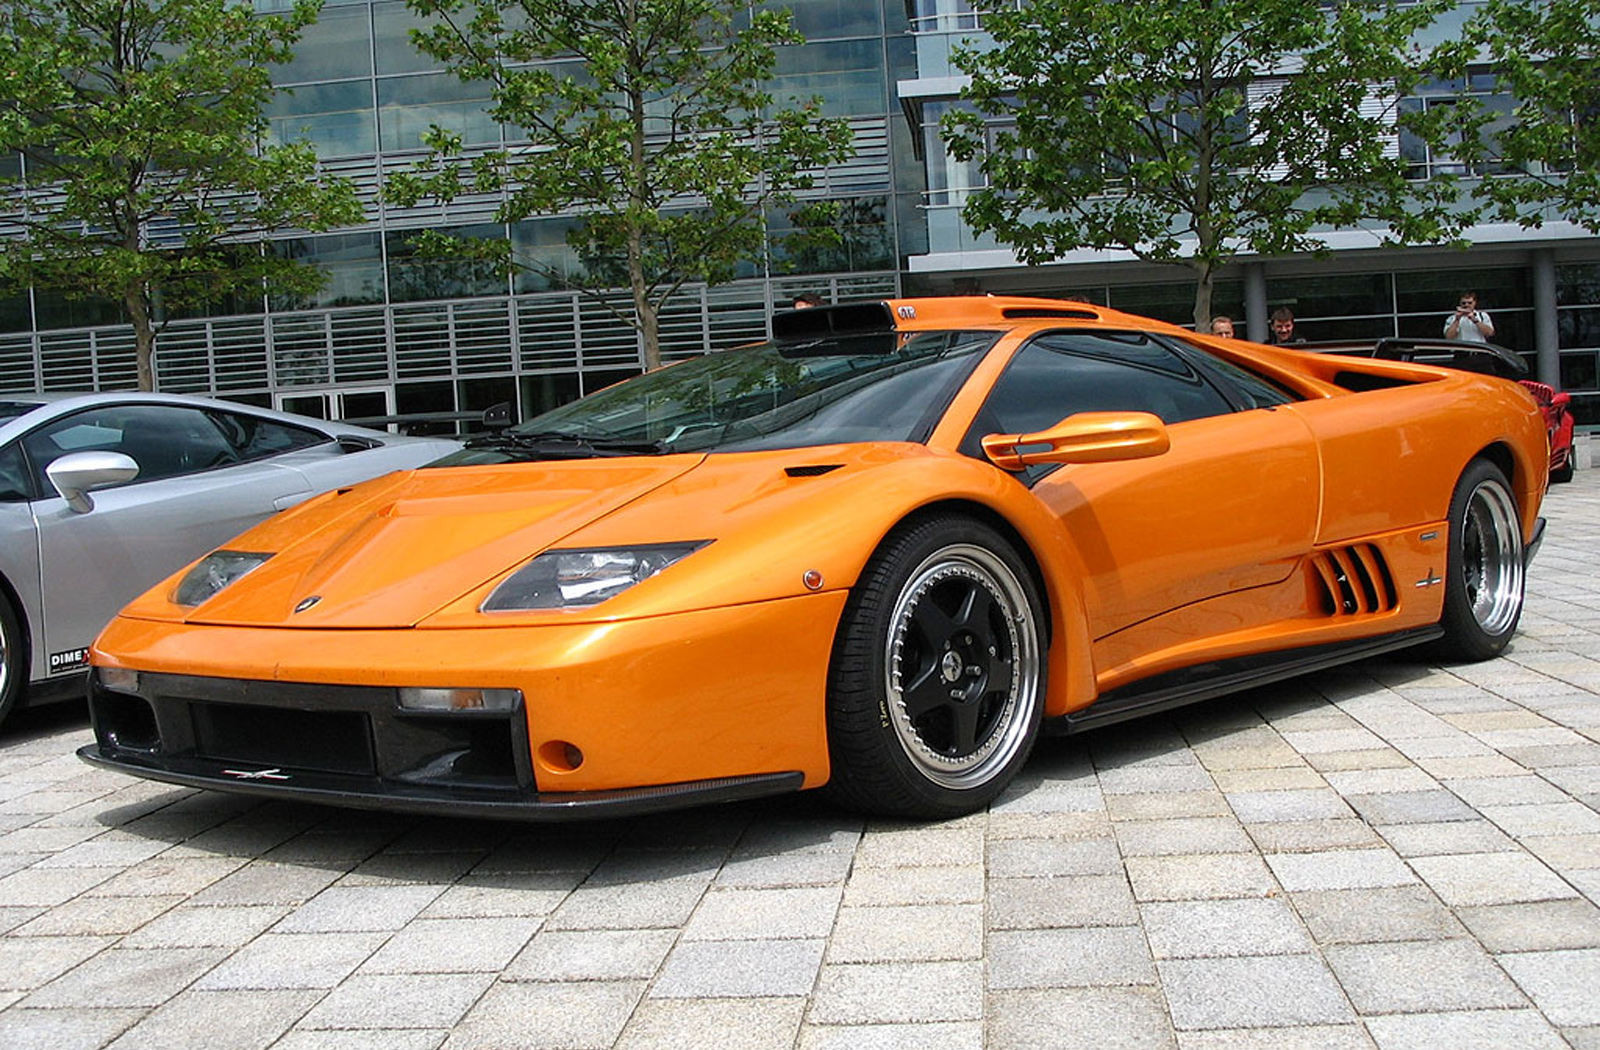 Lamborghini Diablo Gt Oriented Models Of Different Every